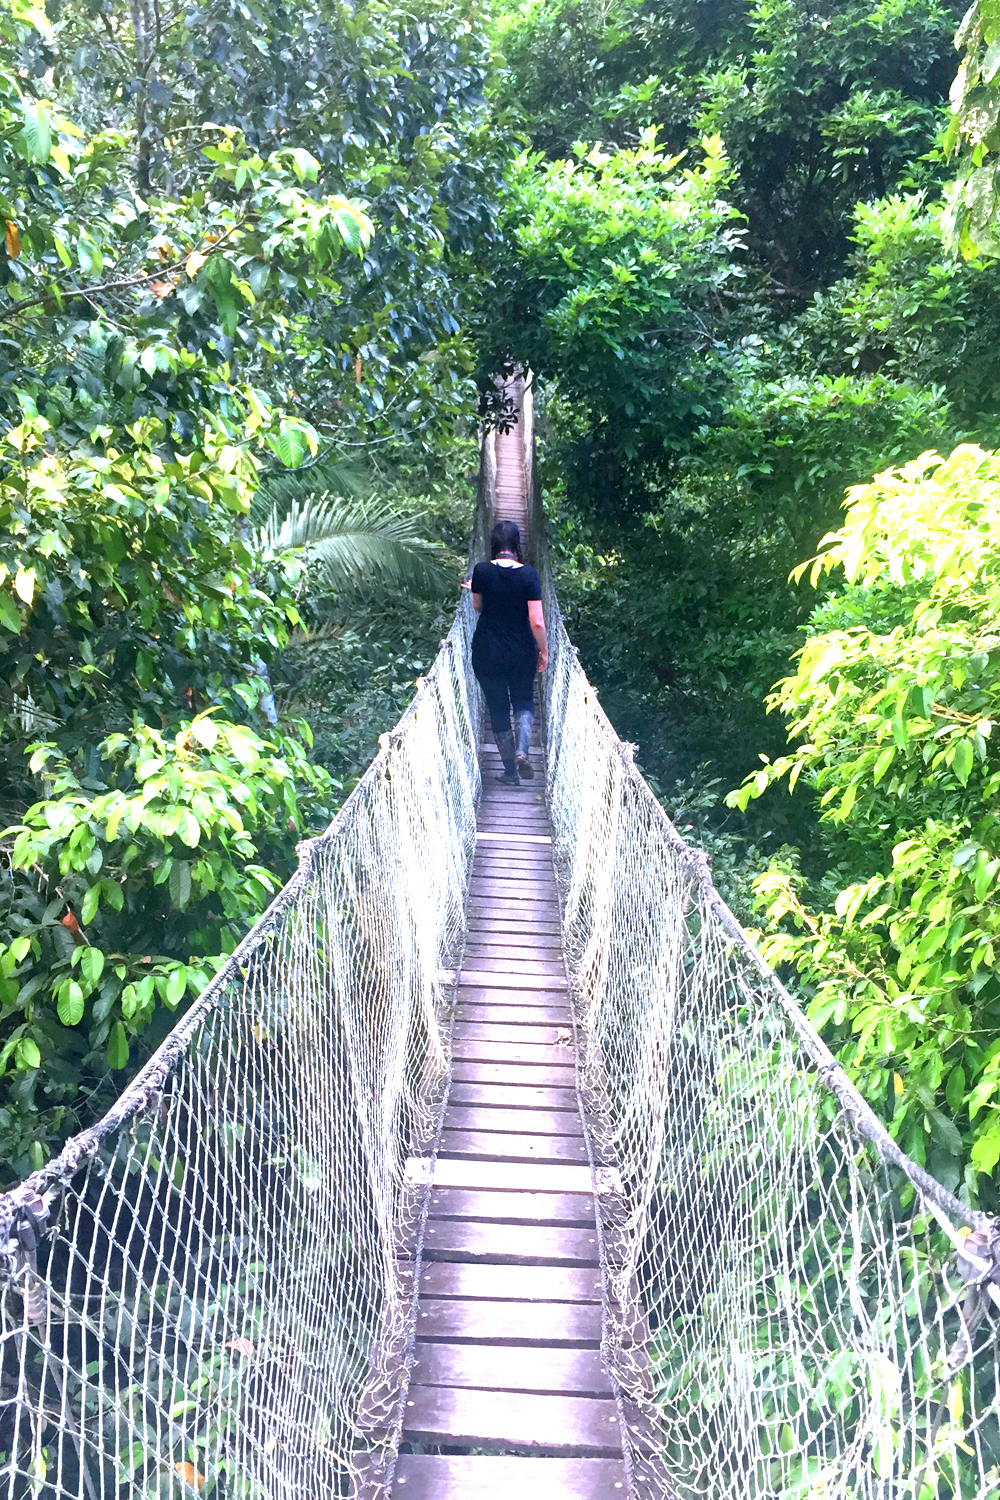 Treetop canopy at the Inkaterra Reserva Amazonica Lodge, Peru - travel & lifestyle blog